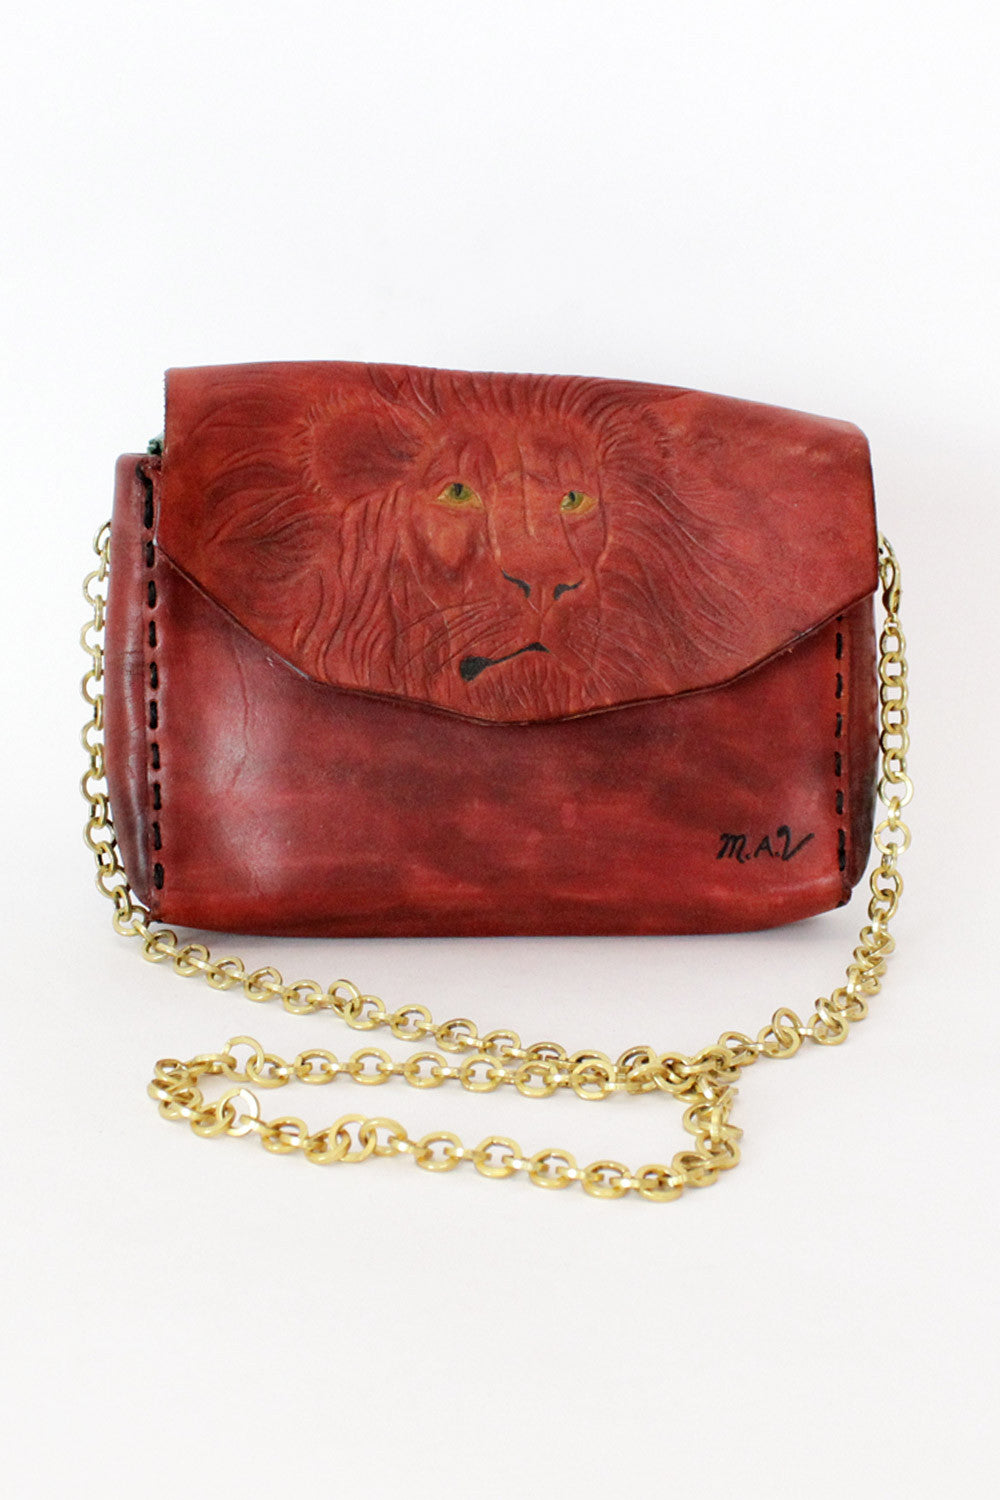 red tooled leather purse